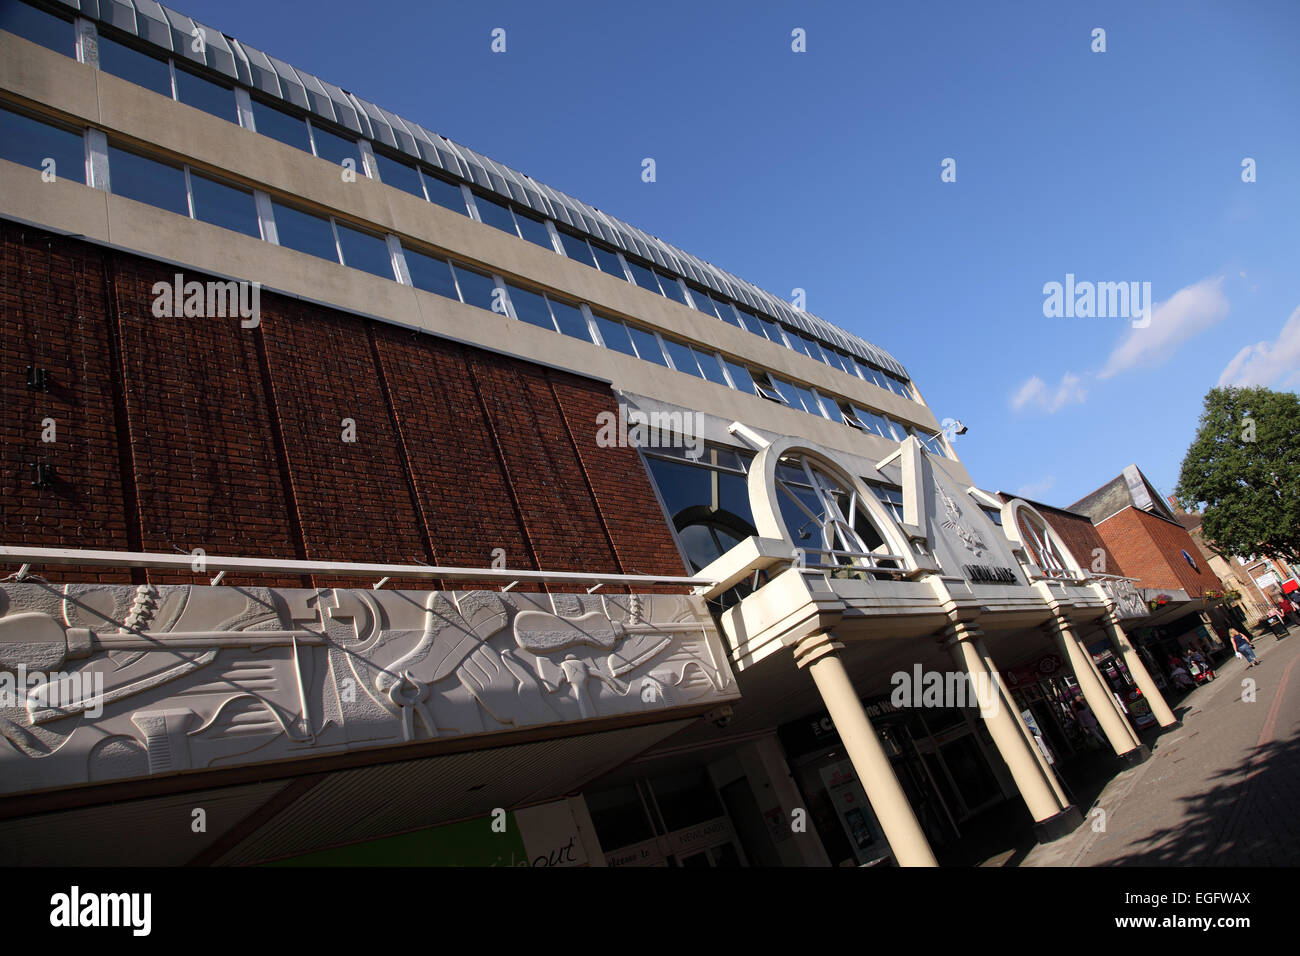 Newlands shopping centre kettering, Northamptonshire - Stock Image